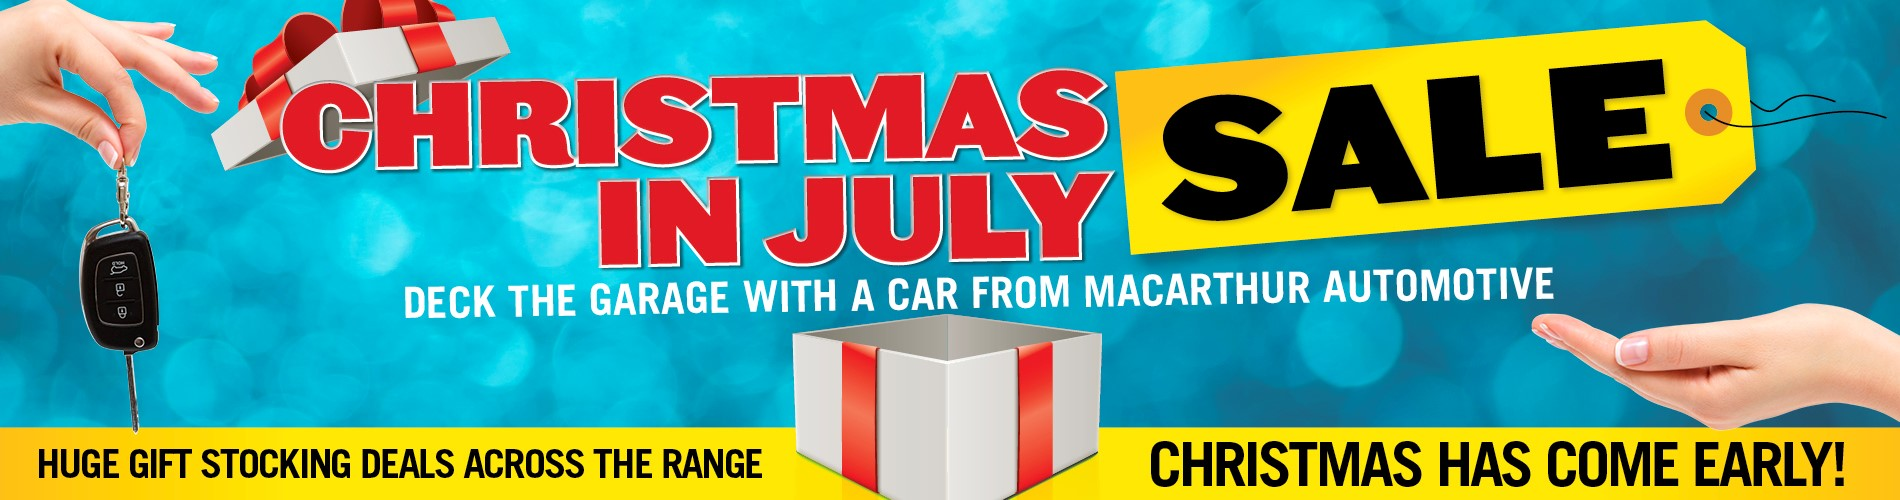 Macarthur Christmas in July Sale